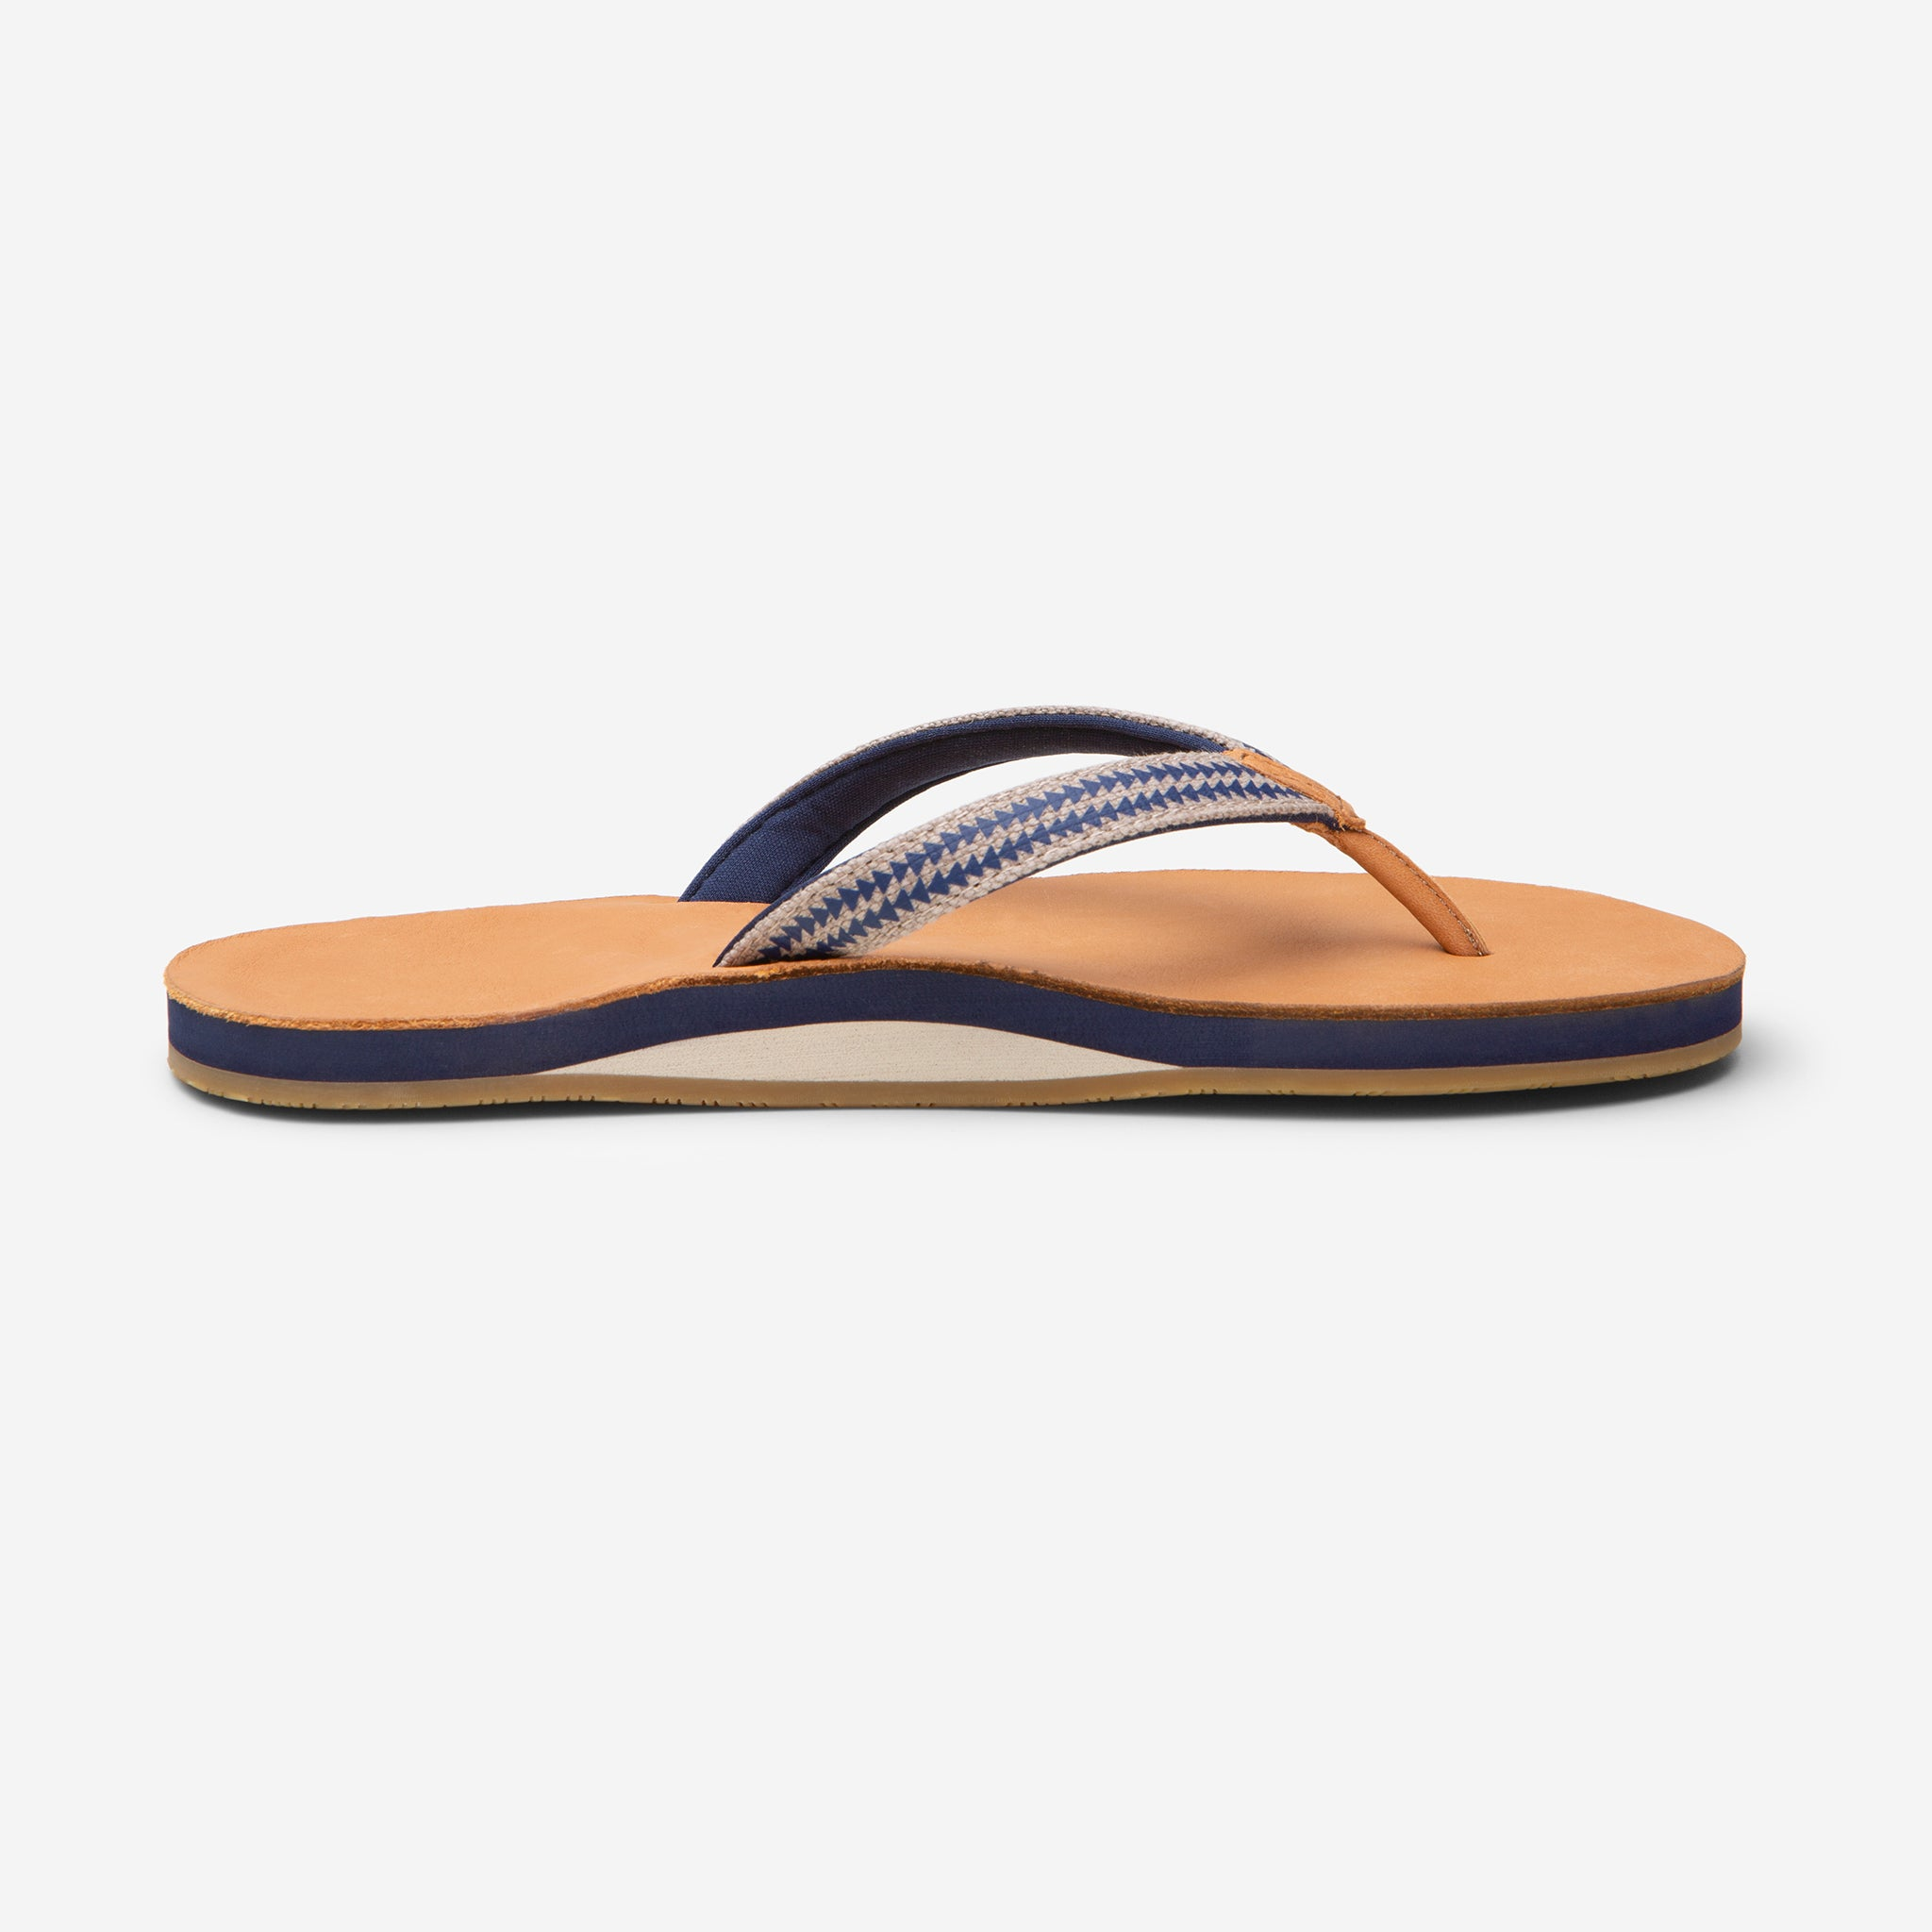 side profile of Hari Mari Women's Fields Puebla flip flops in wheat/navy on white background